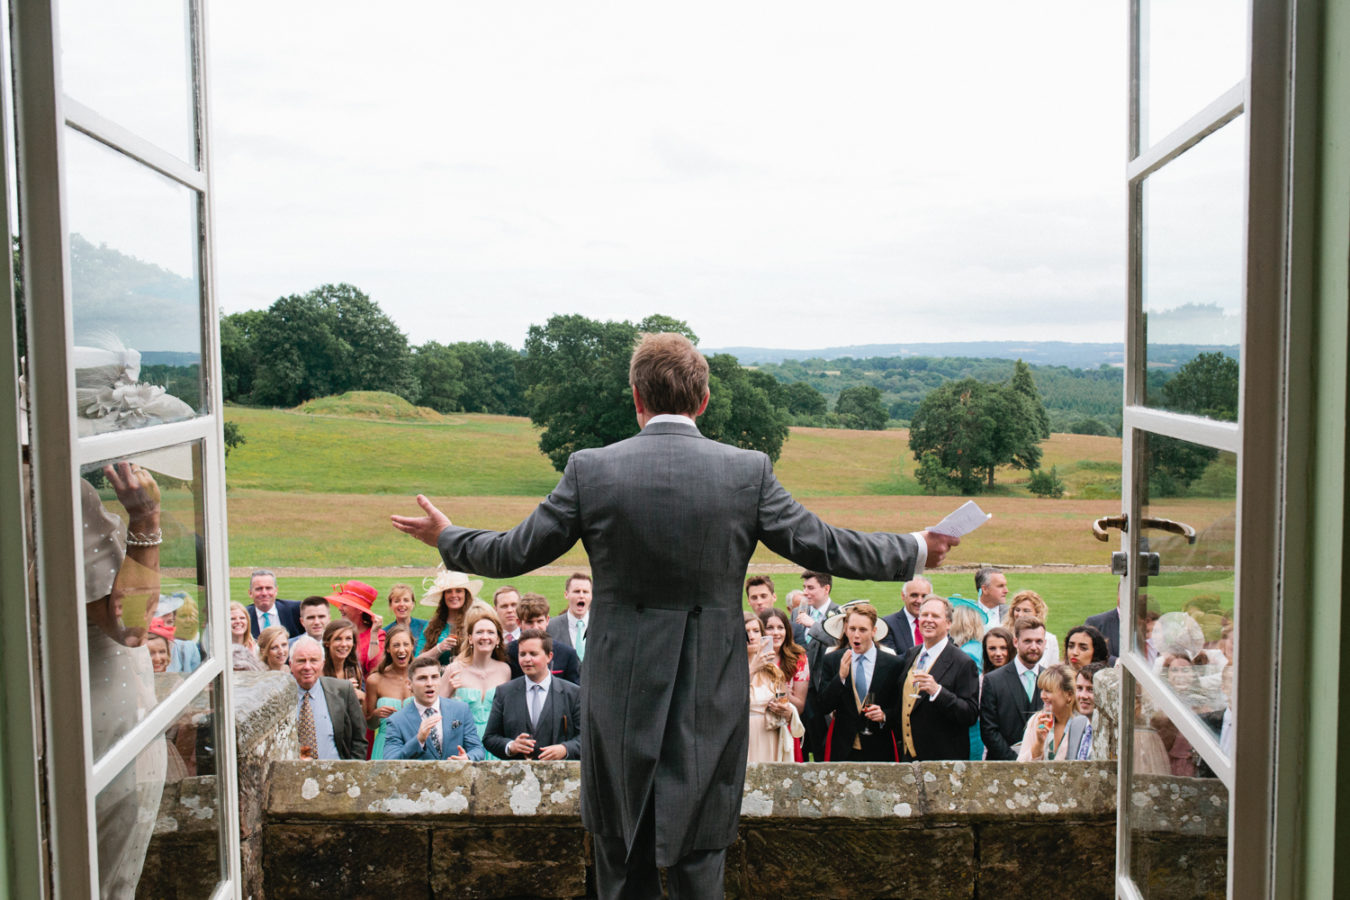 The father of the bride gives a speech on the back steps at Wadhurst Castle photographed by Sussex and Kent wedding photographer Matilda Delves